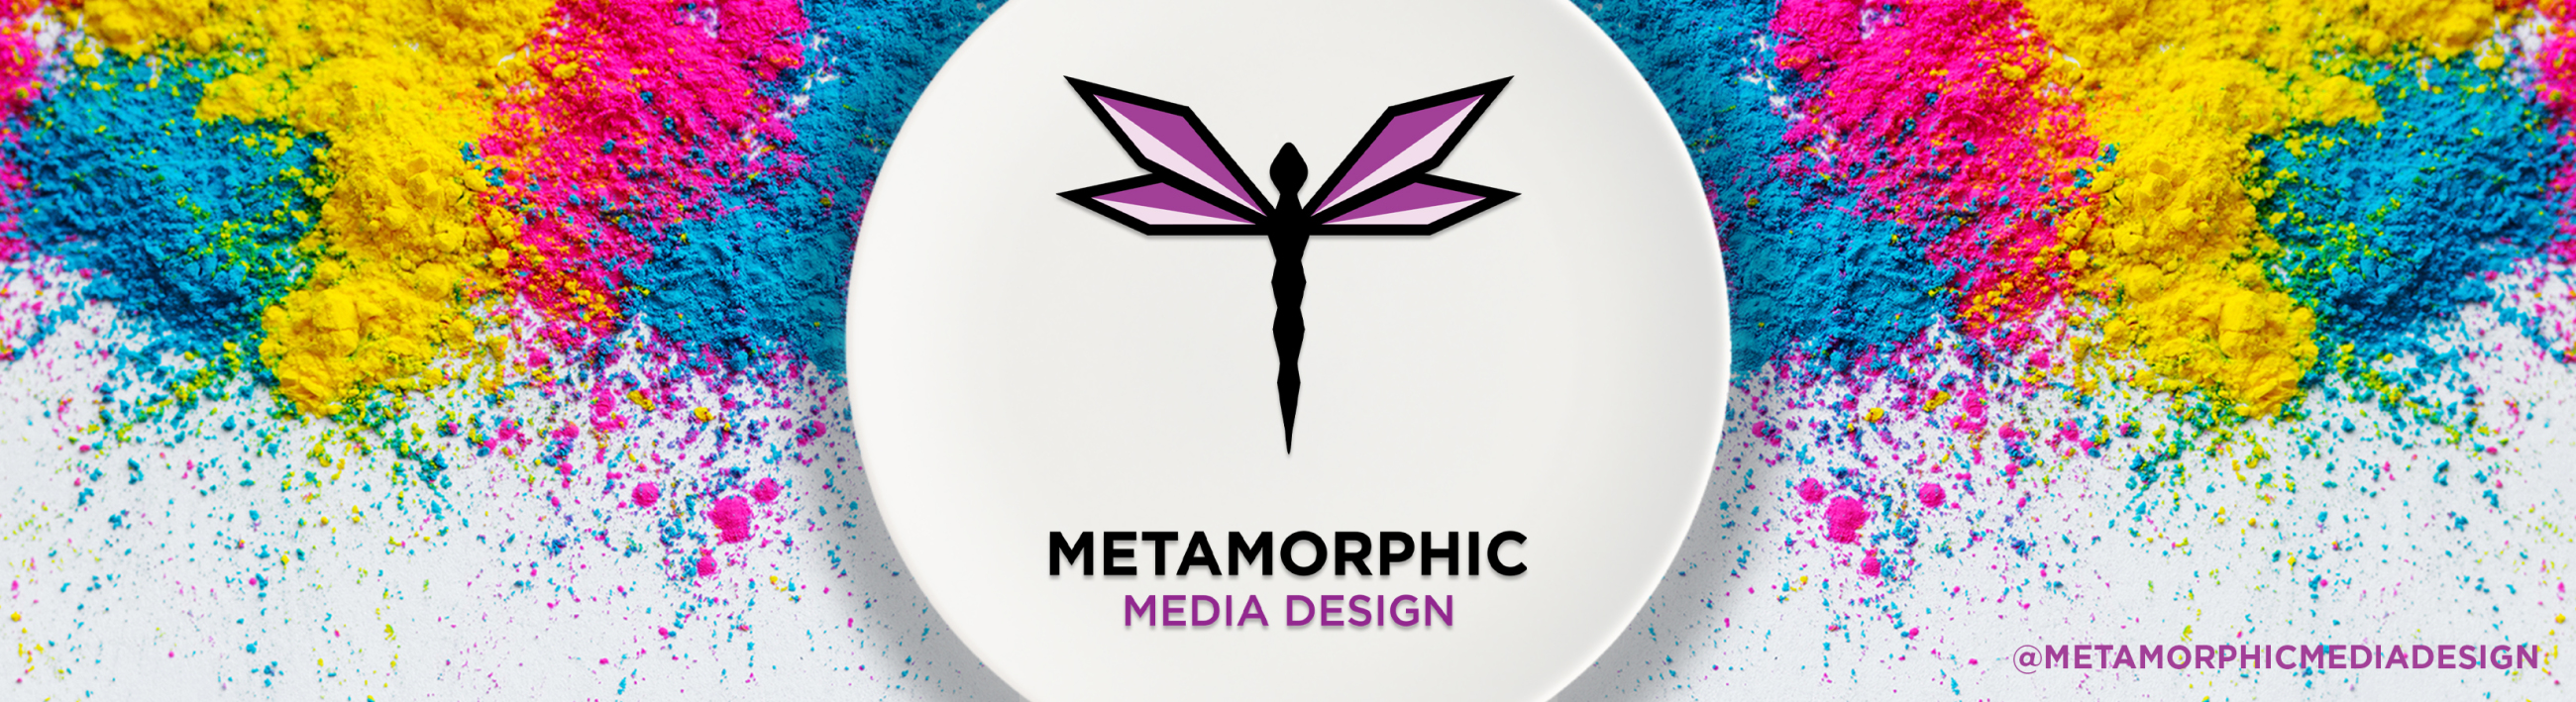 Metamorphic Media Design